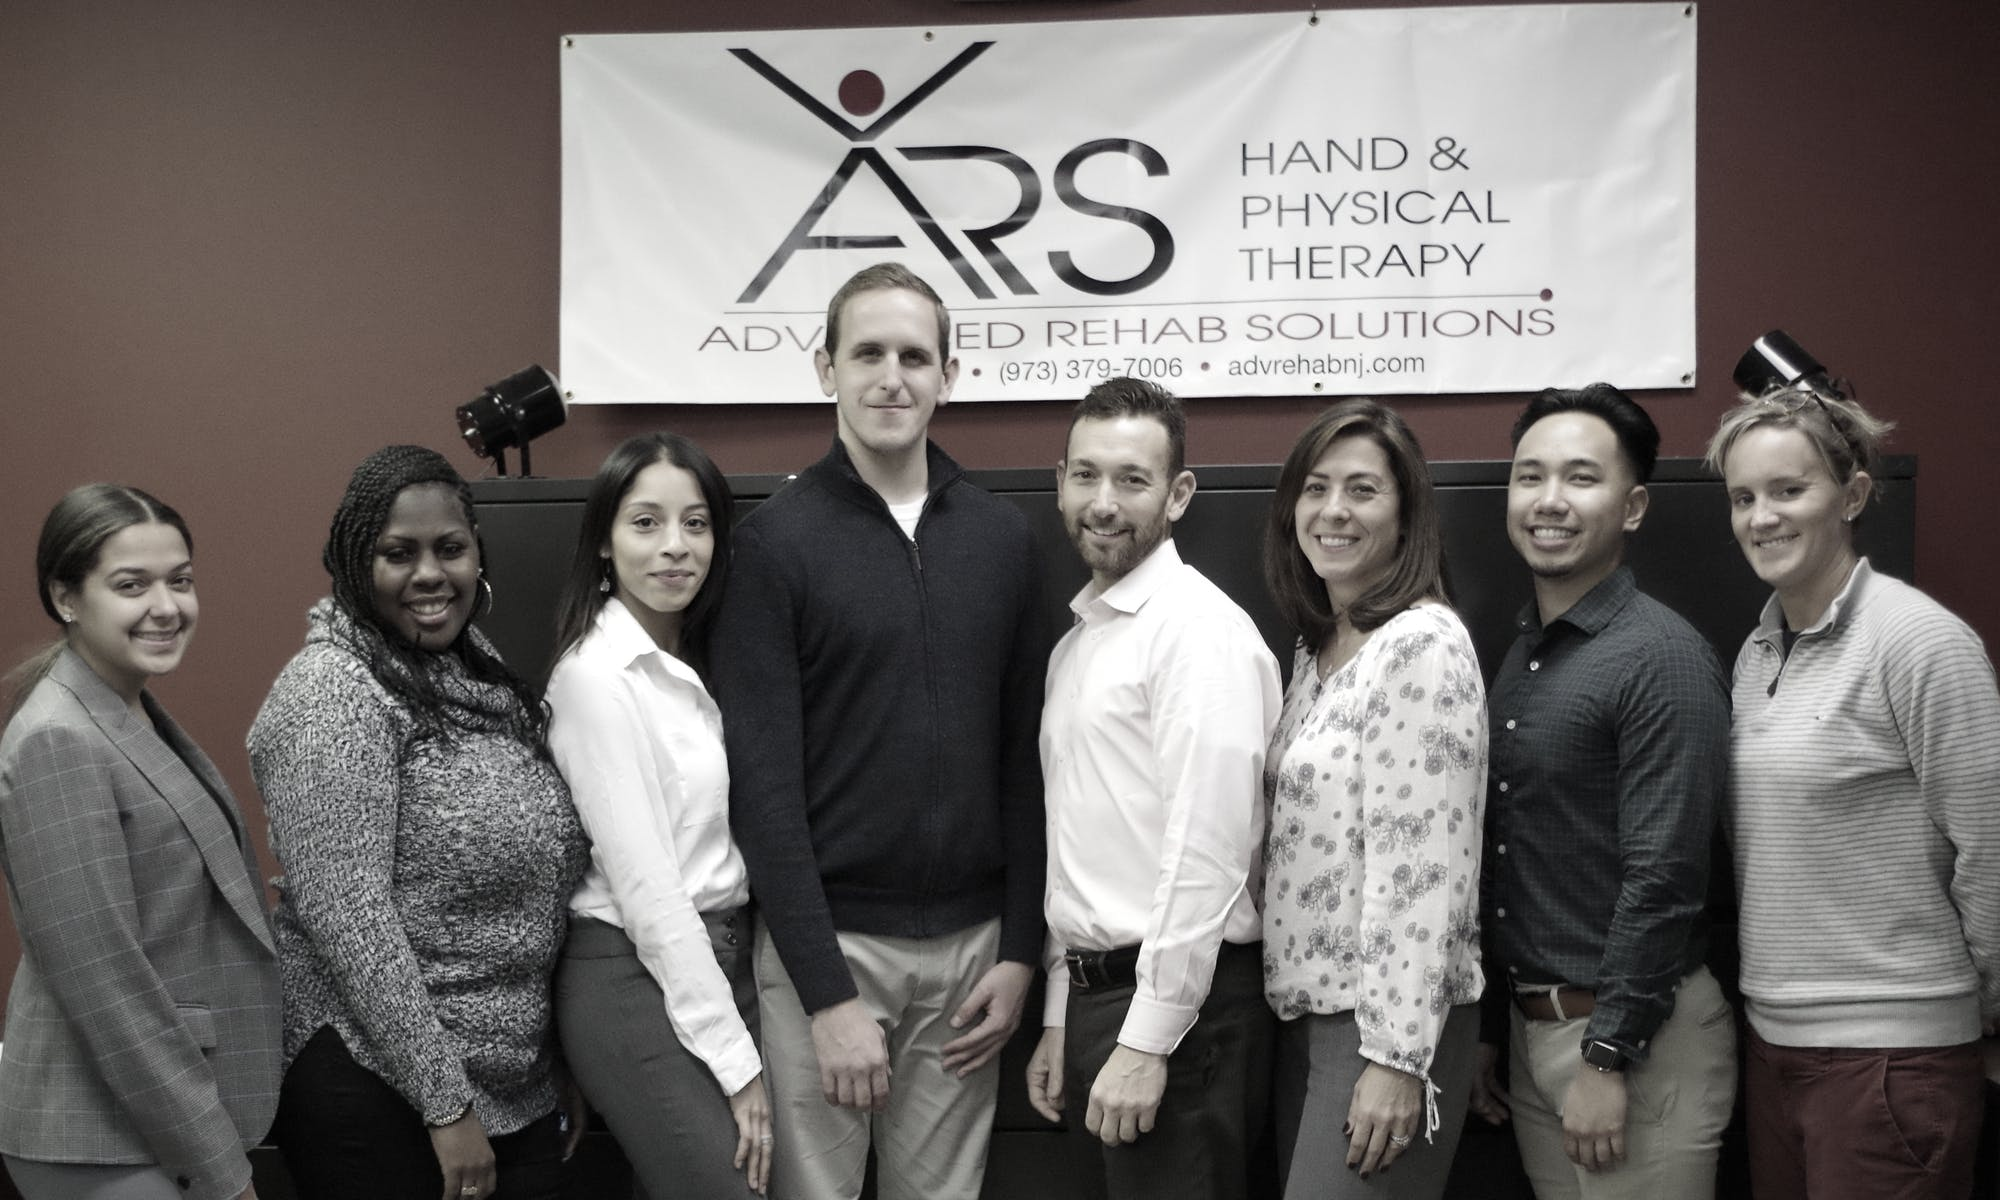 ARS Hand and Physical Therapy